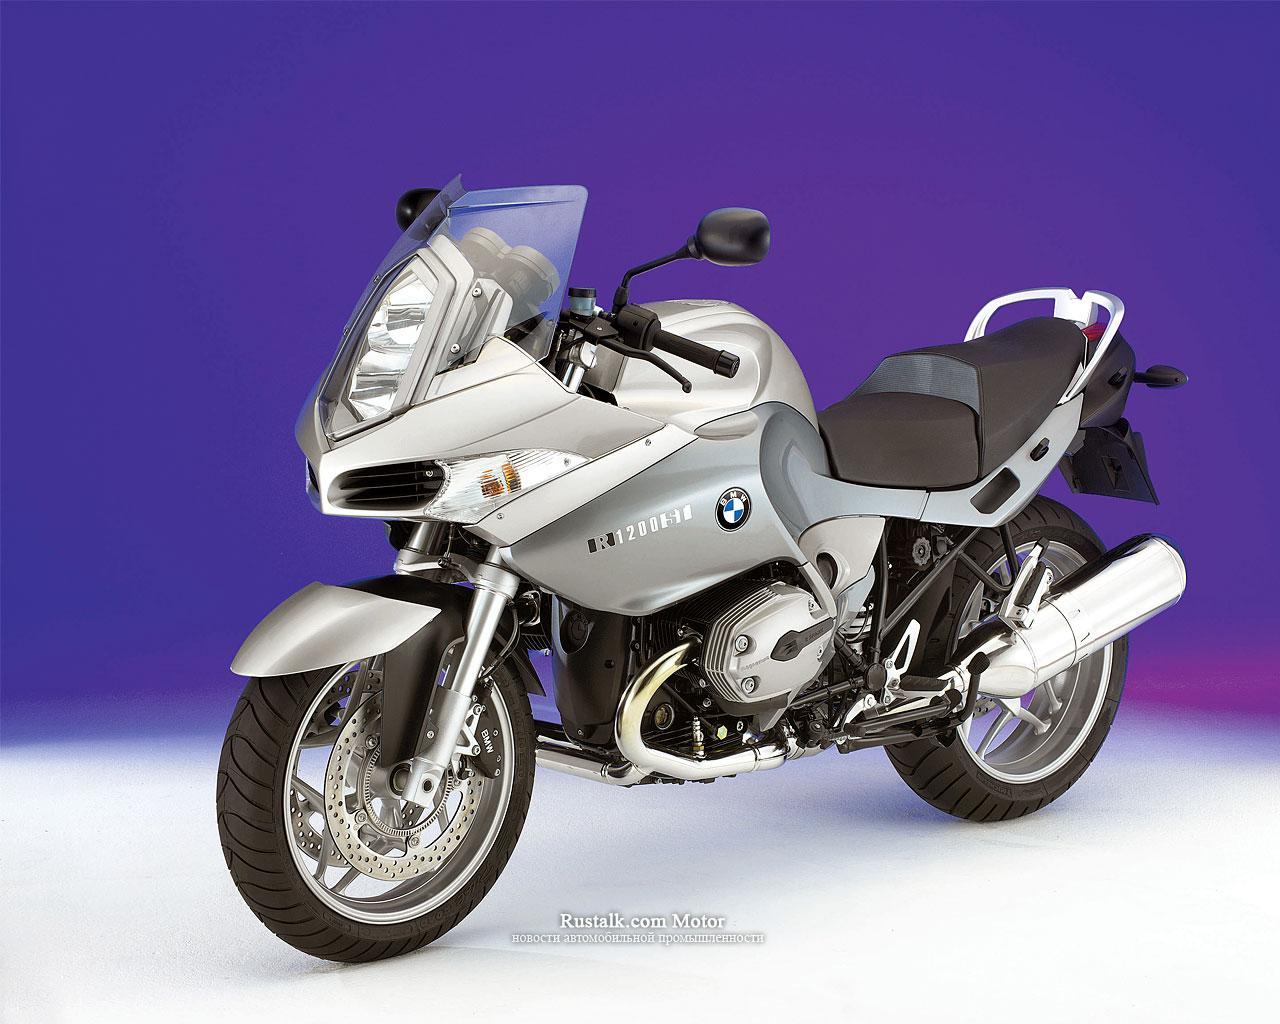 Bmw R1200st Photos Photogallery With 5 Pics Carsbase Com